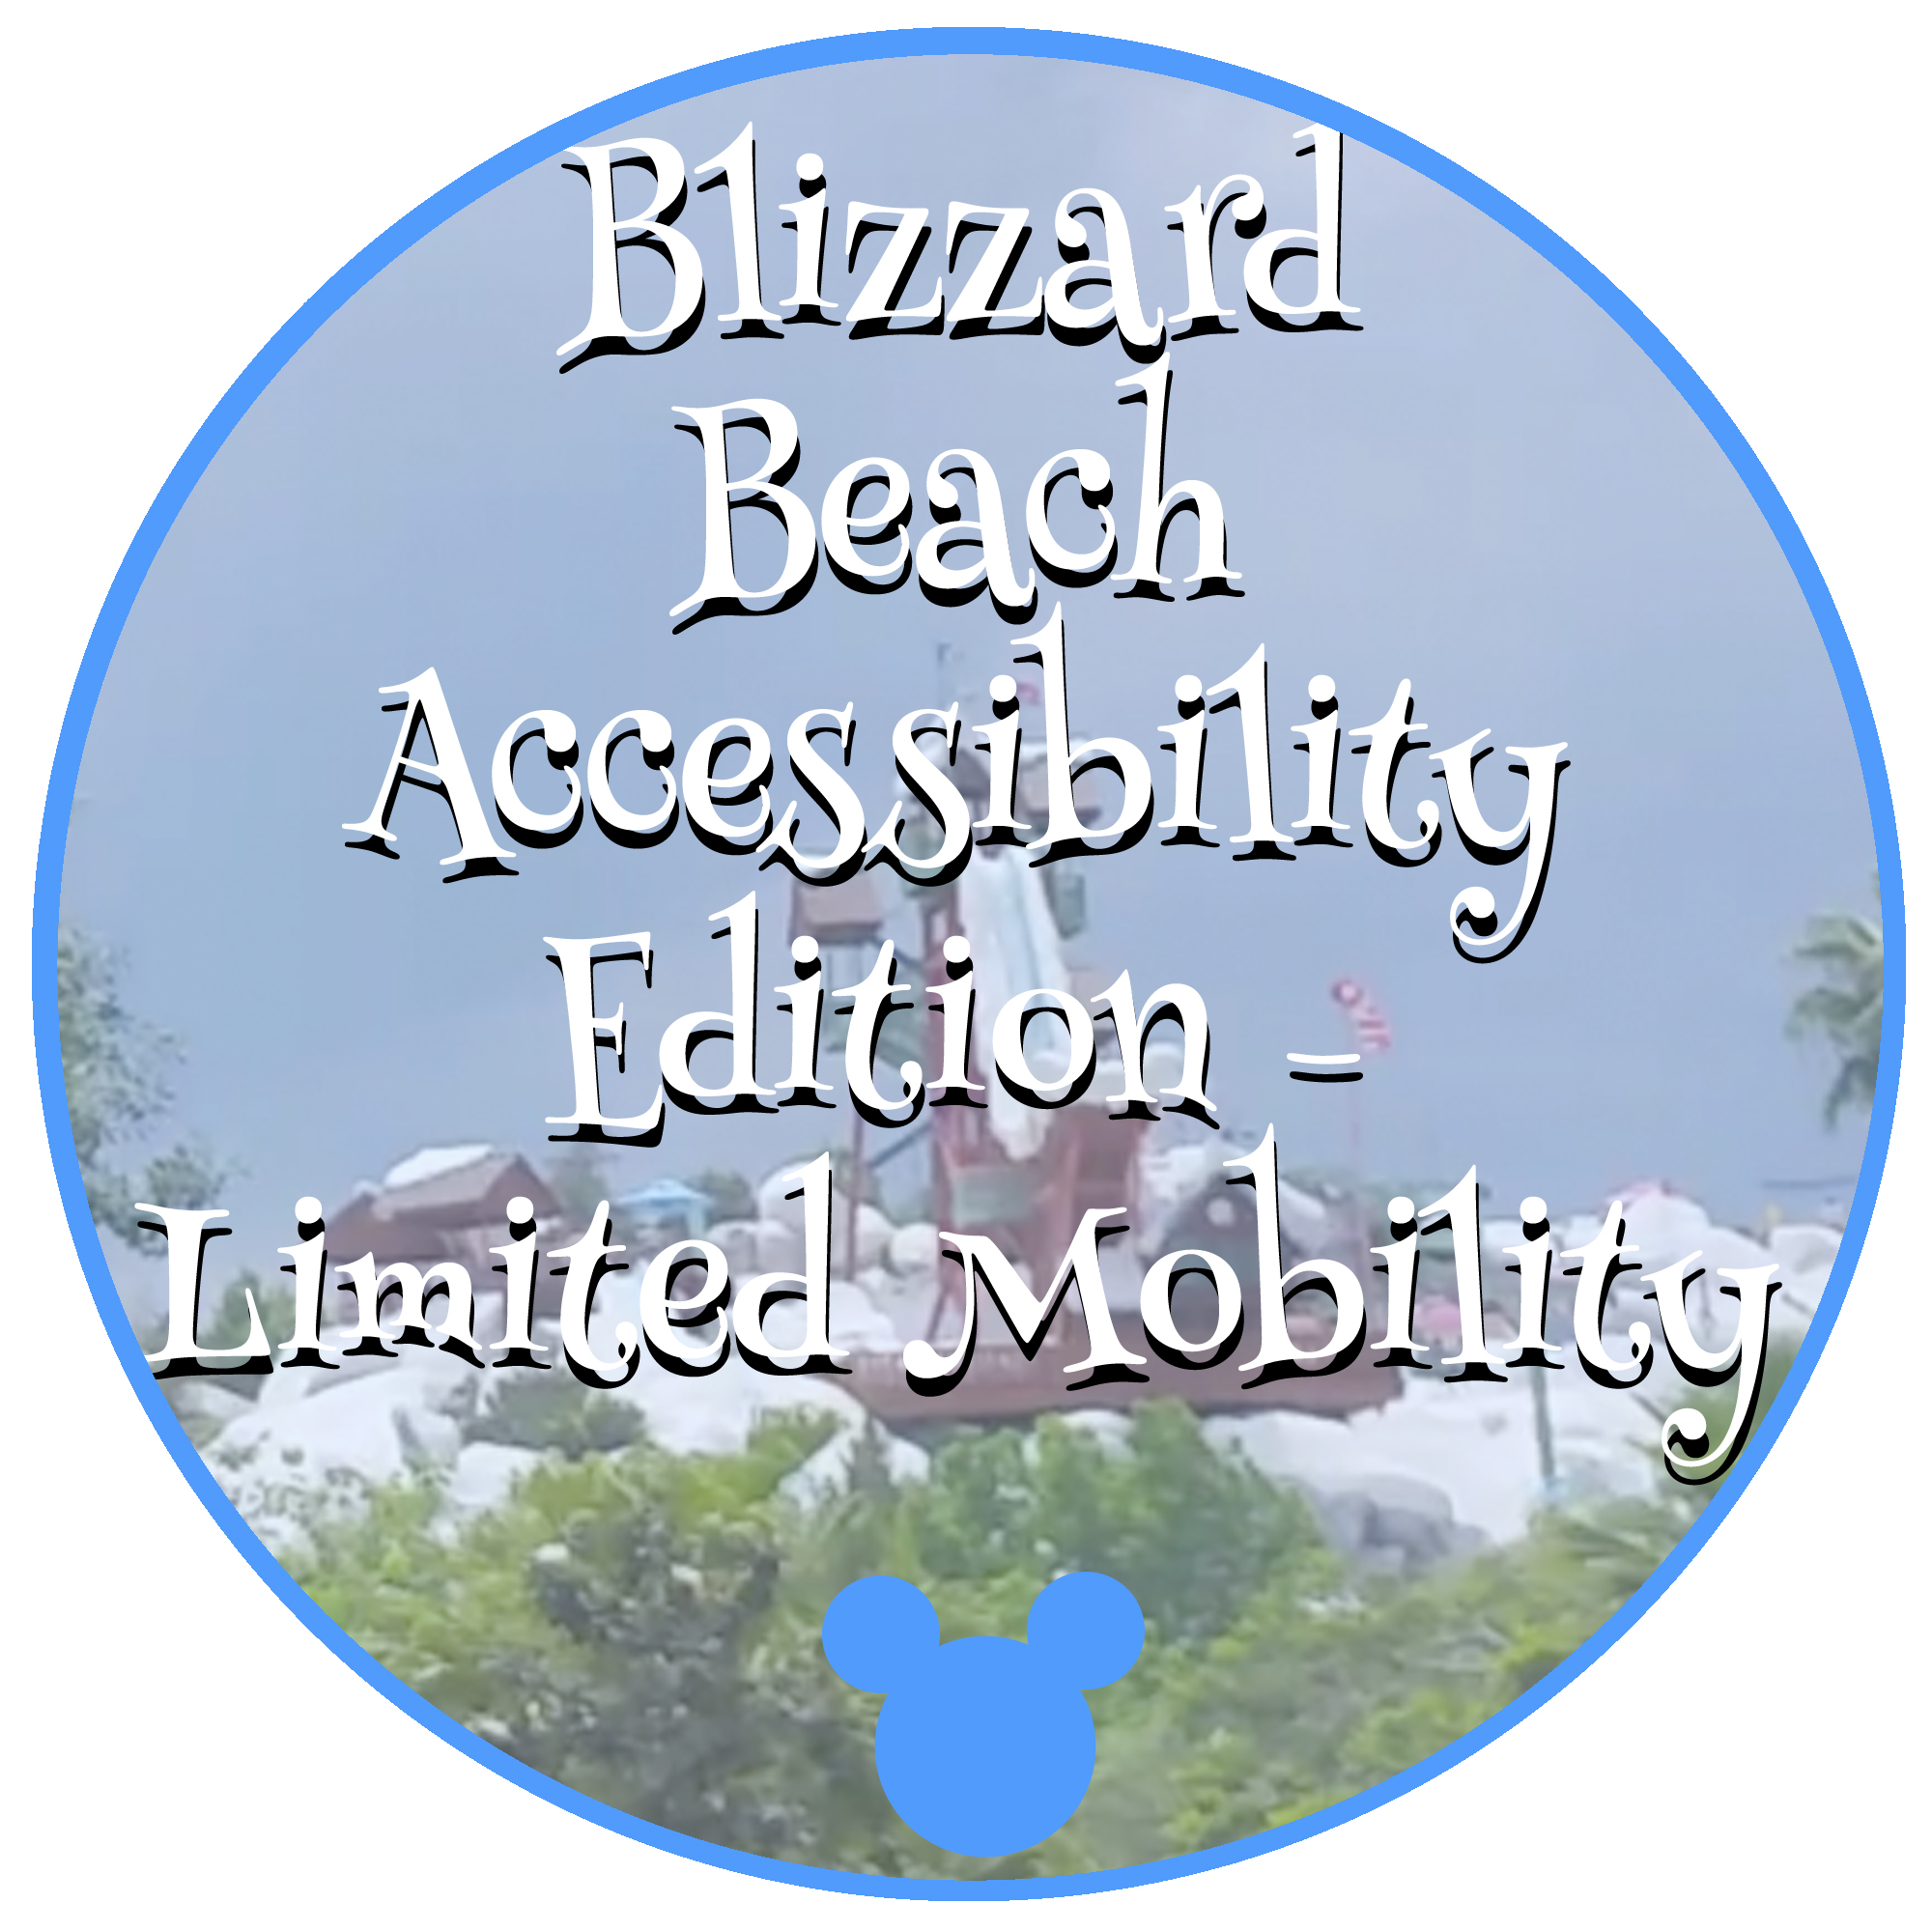 Disney's Blizzard Beach Water Park Limited Mobility